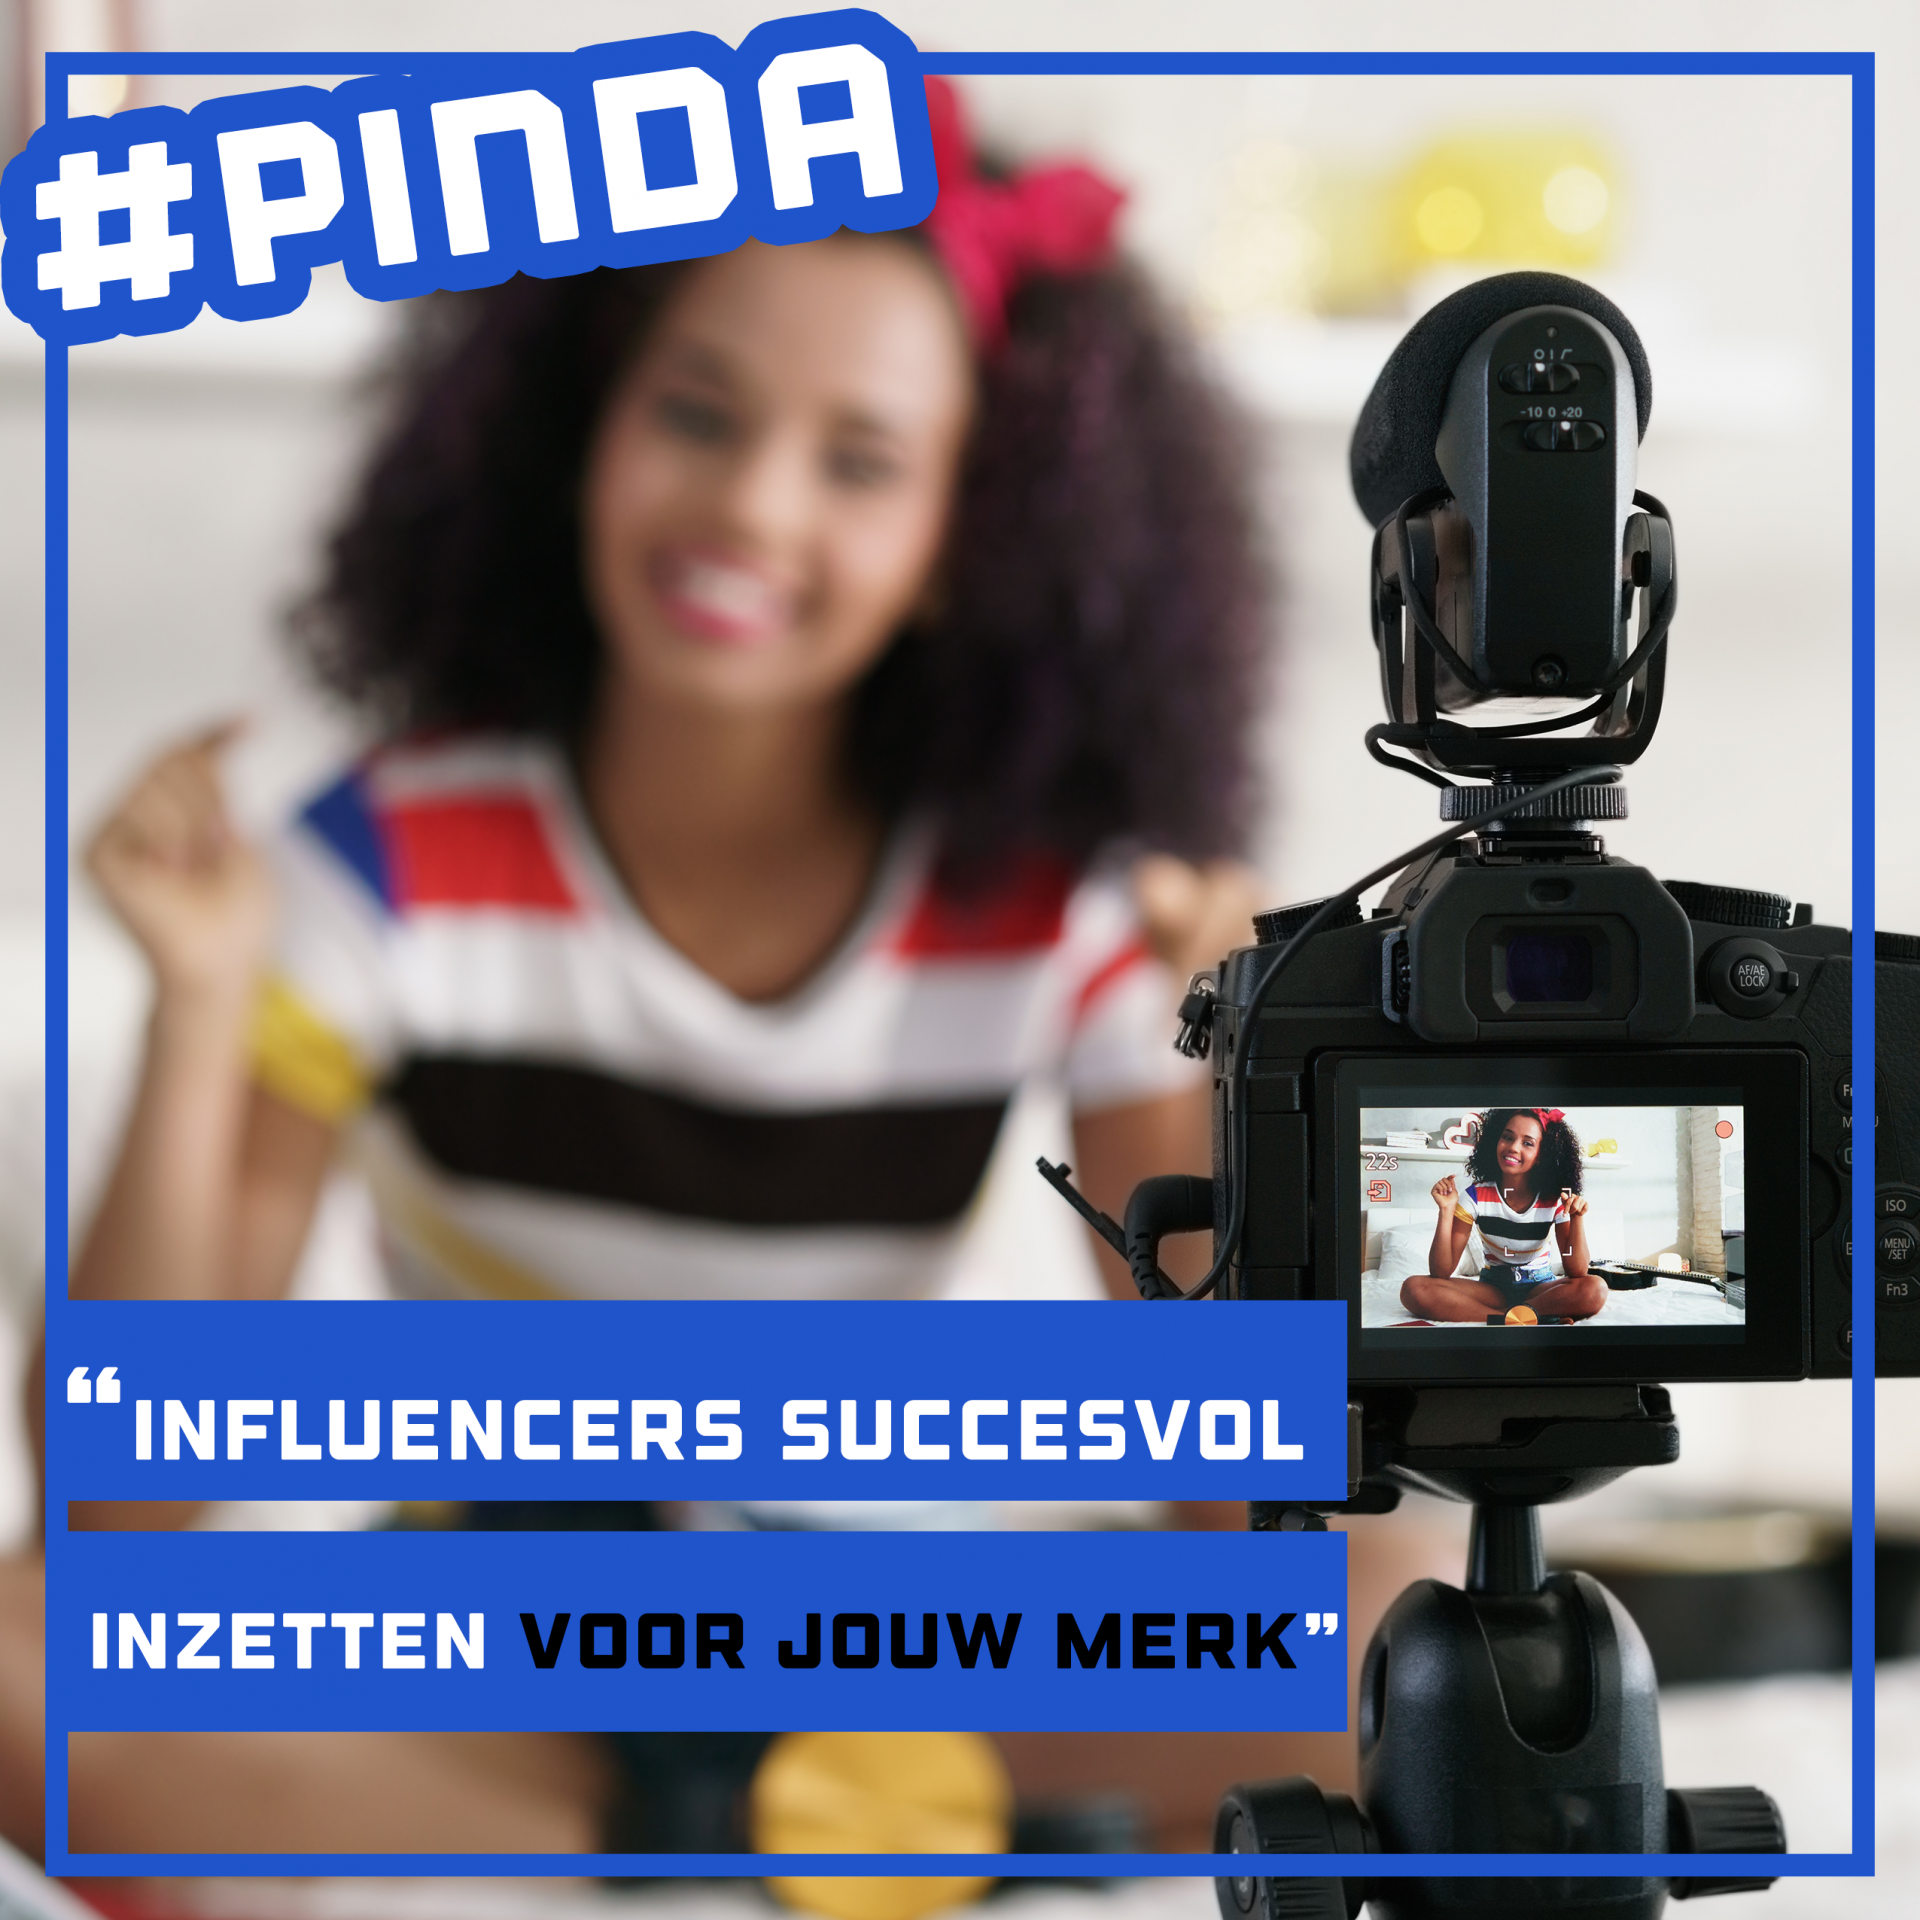 Influencer Marketing - waar begin je?